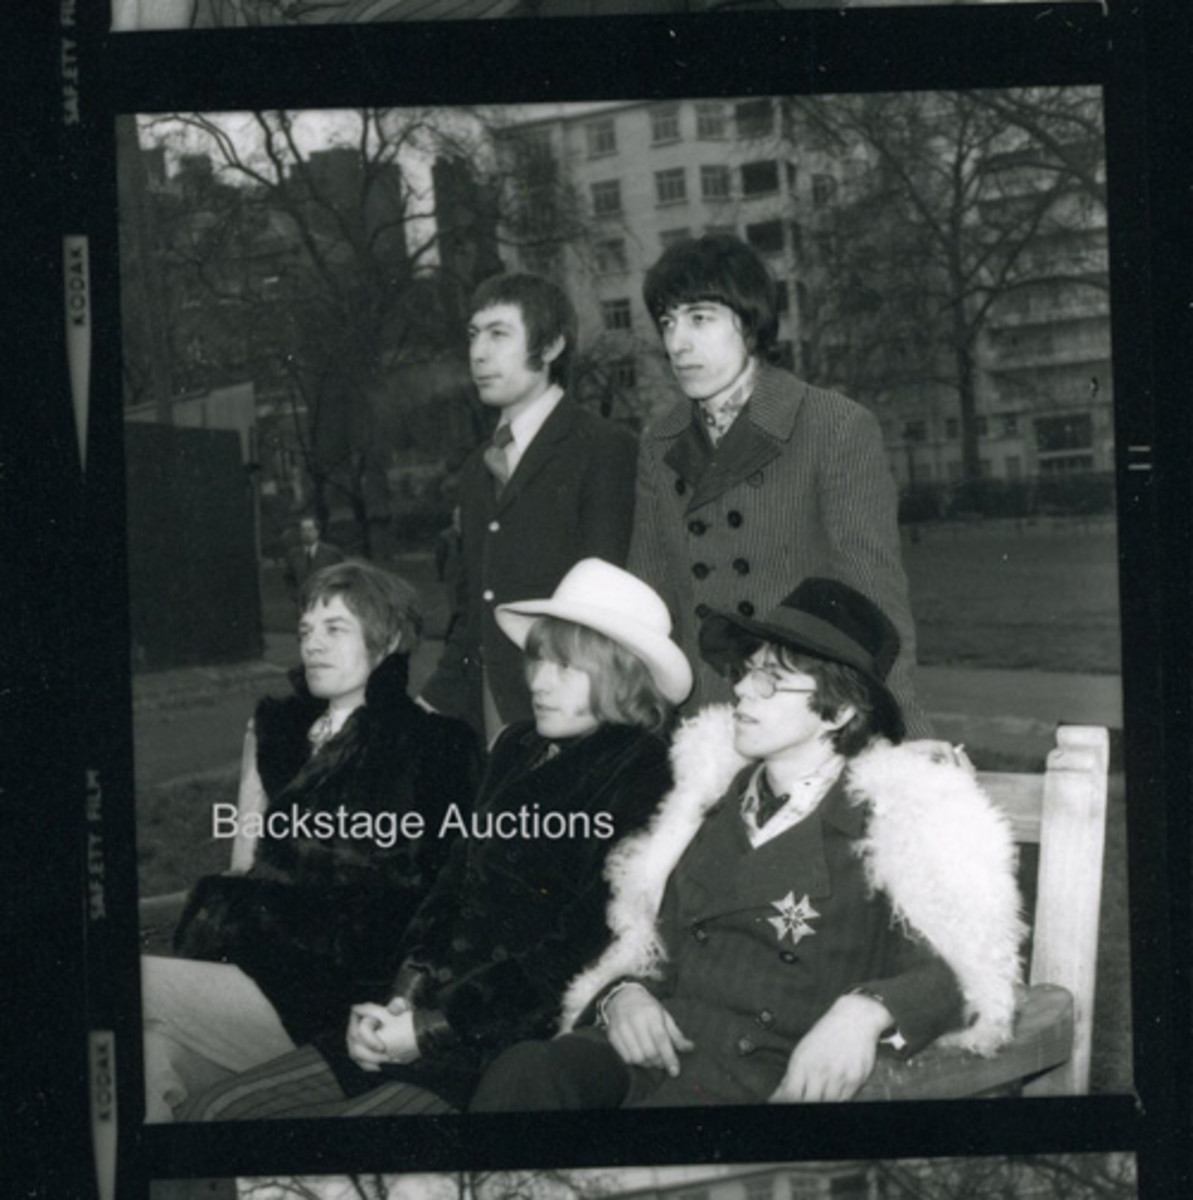 One of the many Rolling Stones images to be found in Backstage Auctions' London Features auction. Image courtesy of Backstage Auctions.